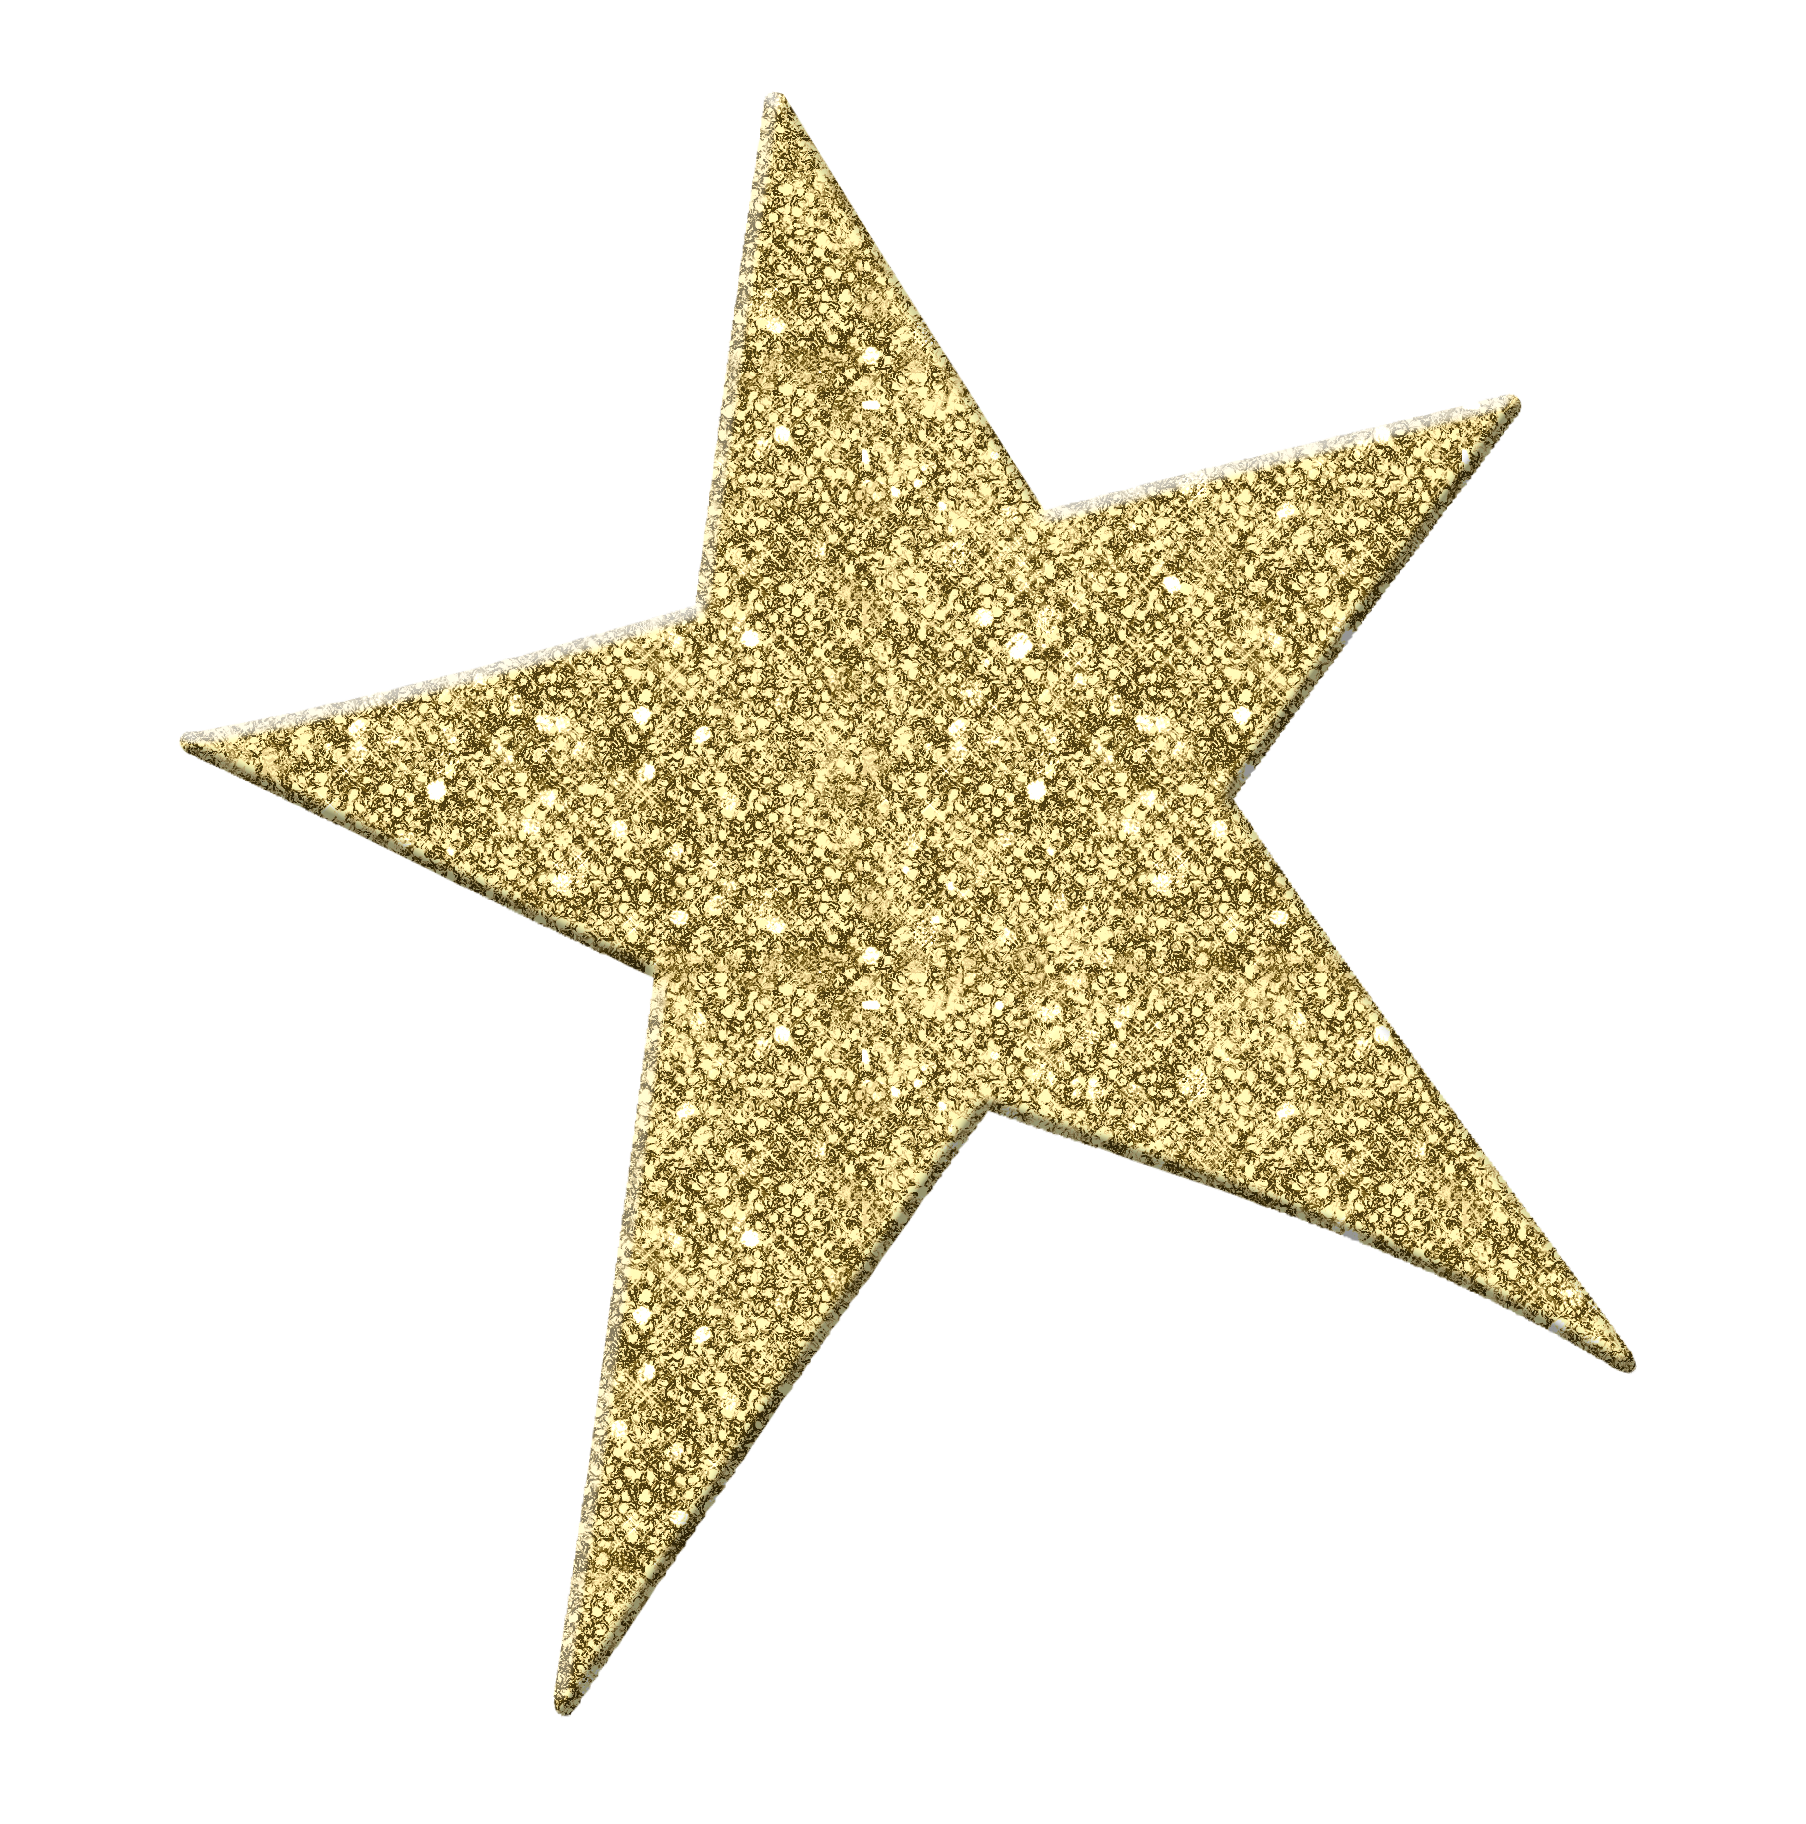 Gold Shining Star clipart free image